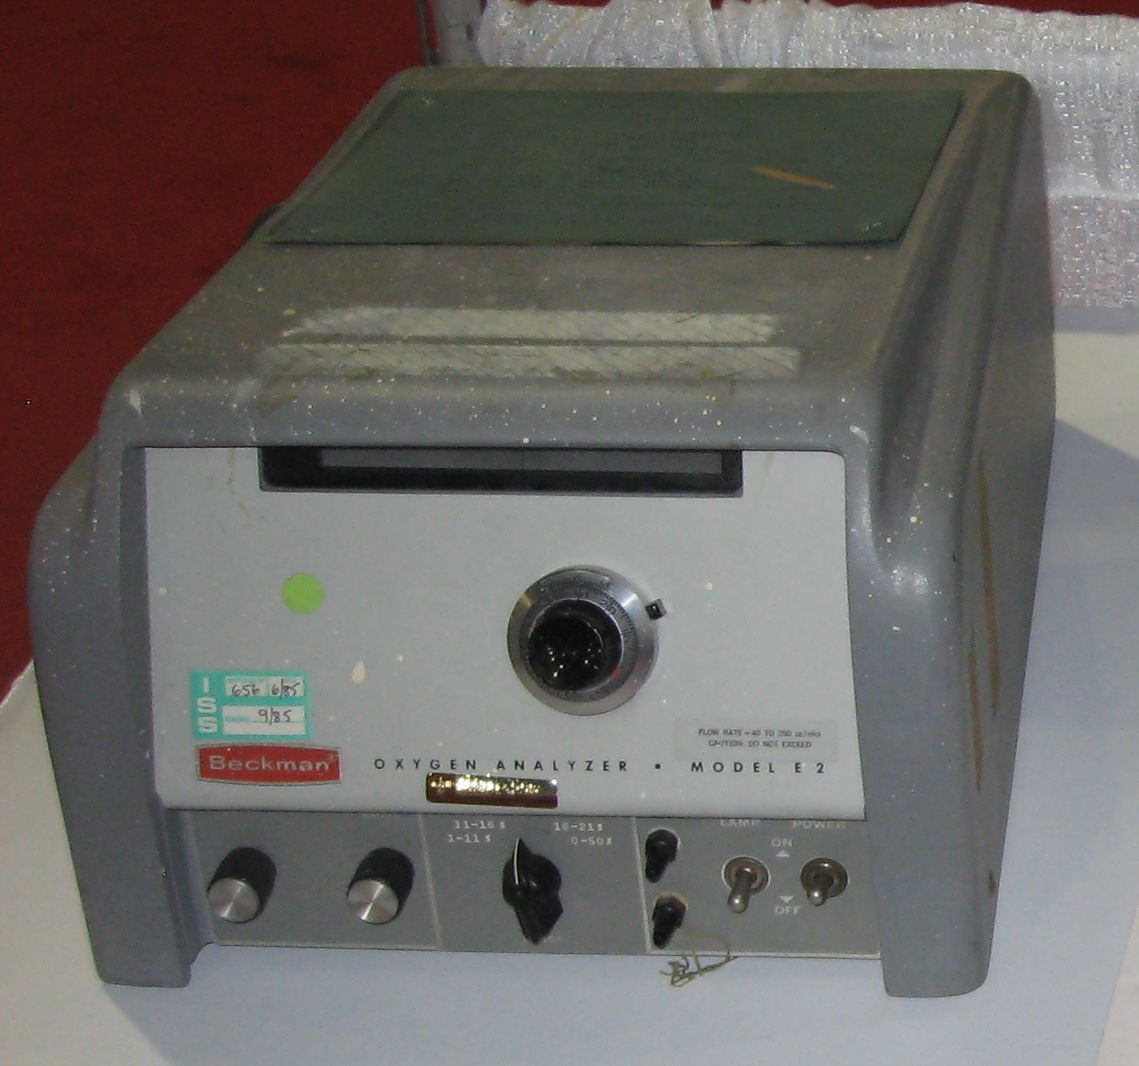 Beckman_Oxygen_Analyzer_Model_E2_1960s